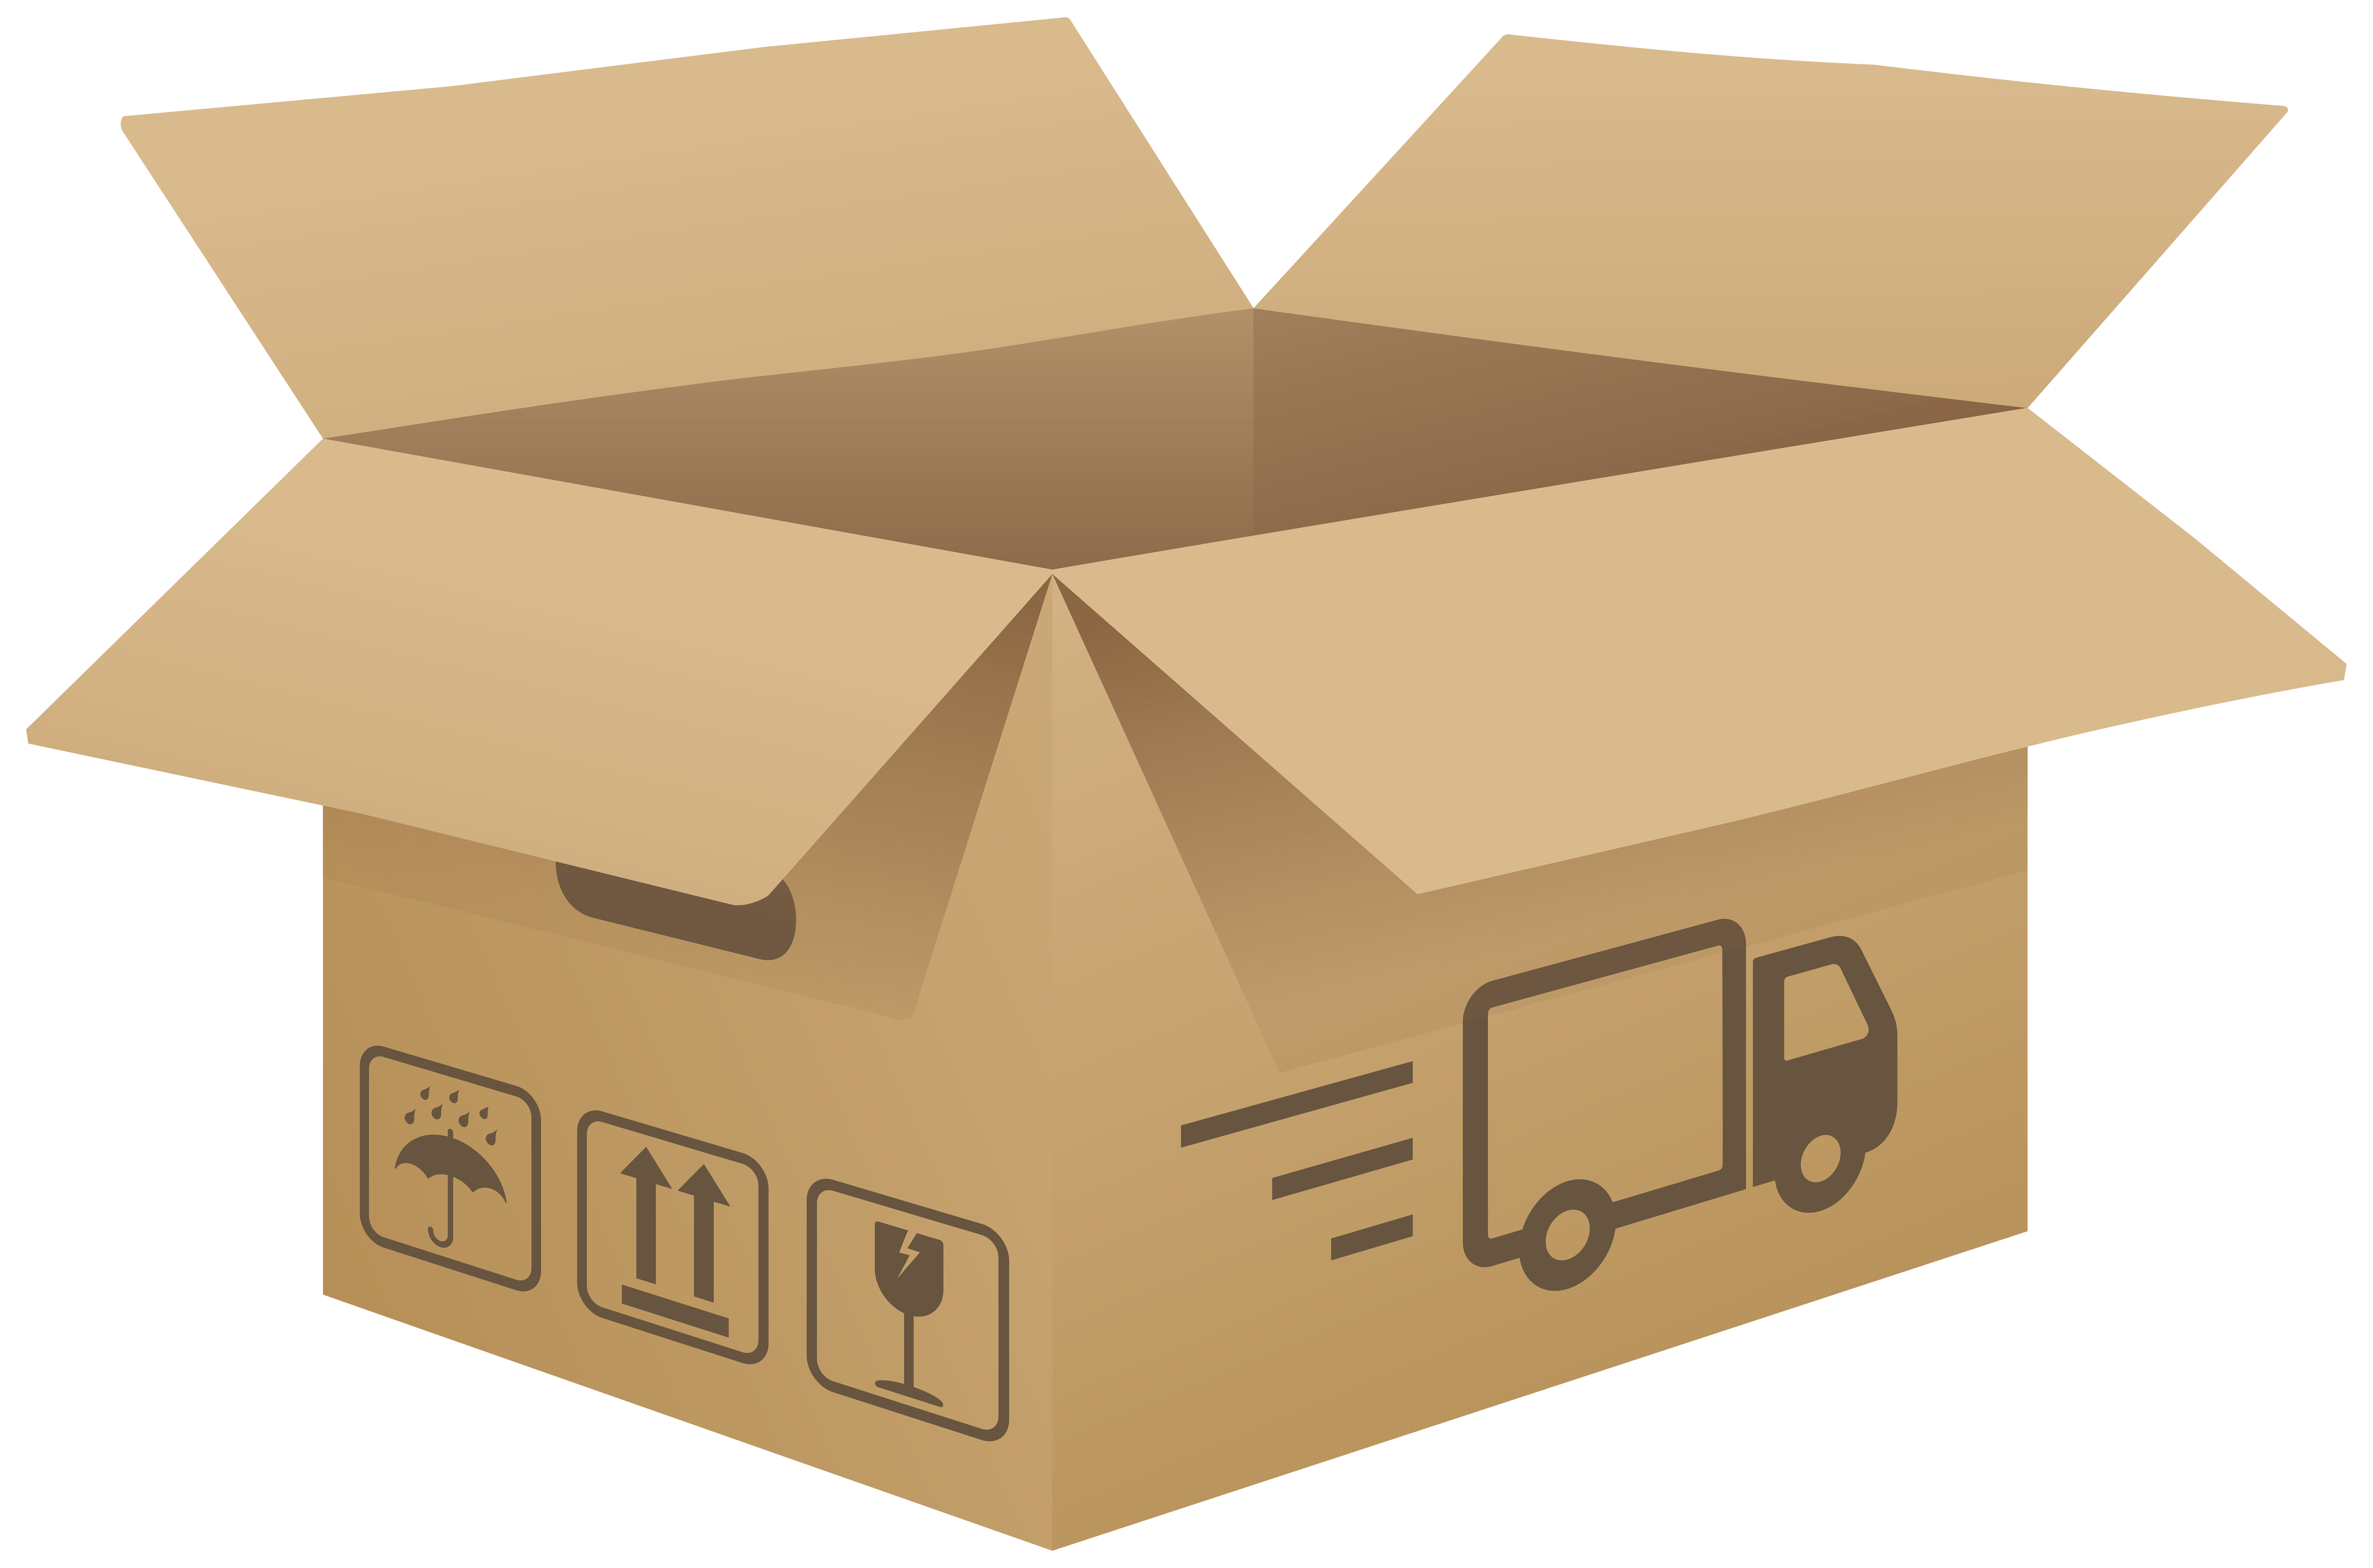 Clipart cardboard box banner transparent library Open Cardboard Box PNG Clip Art Image - Best WEB Clipart banner transparent library